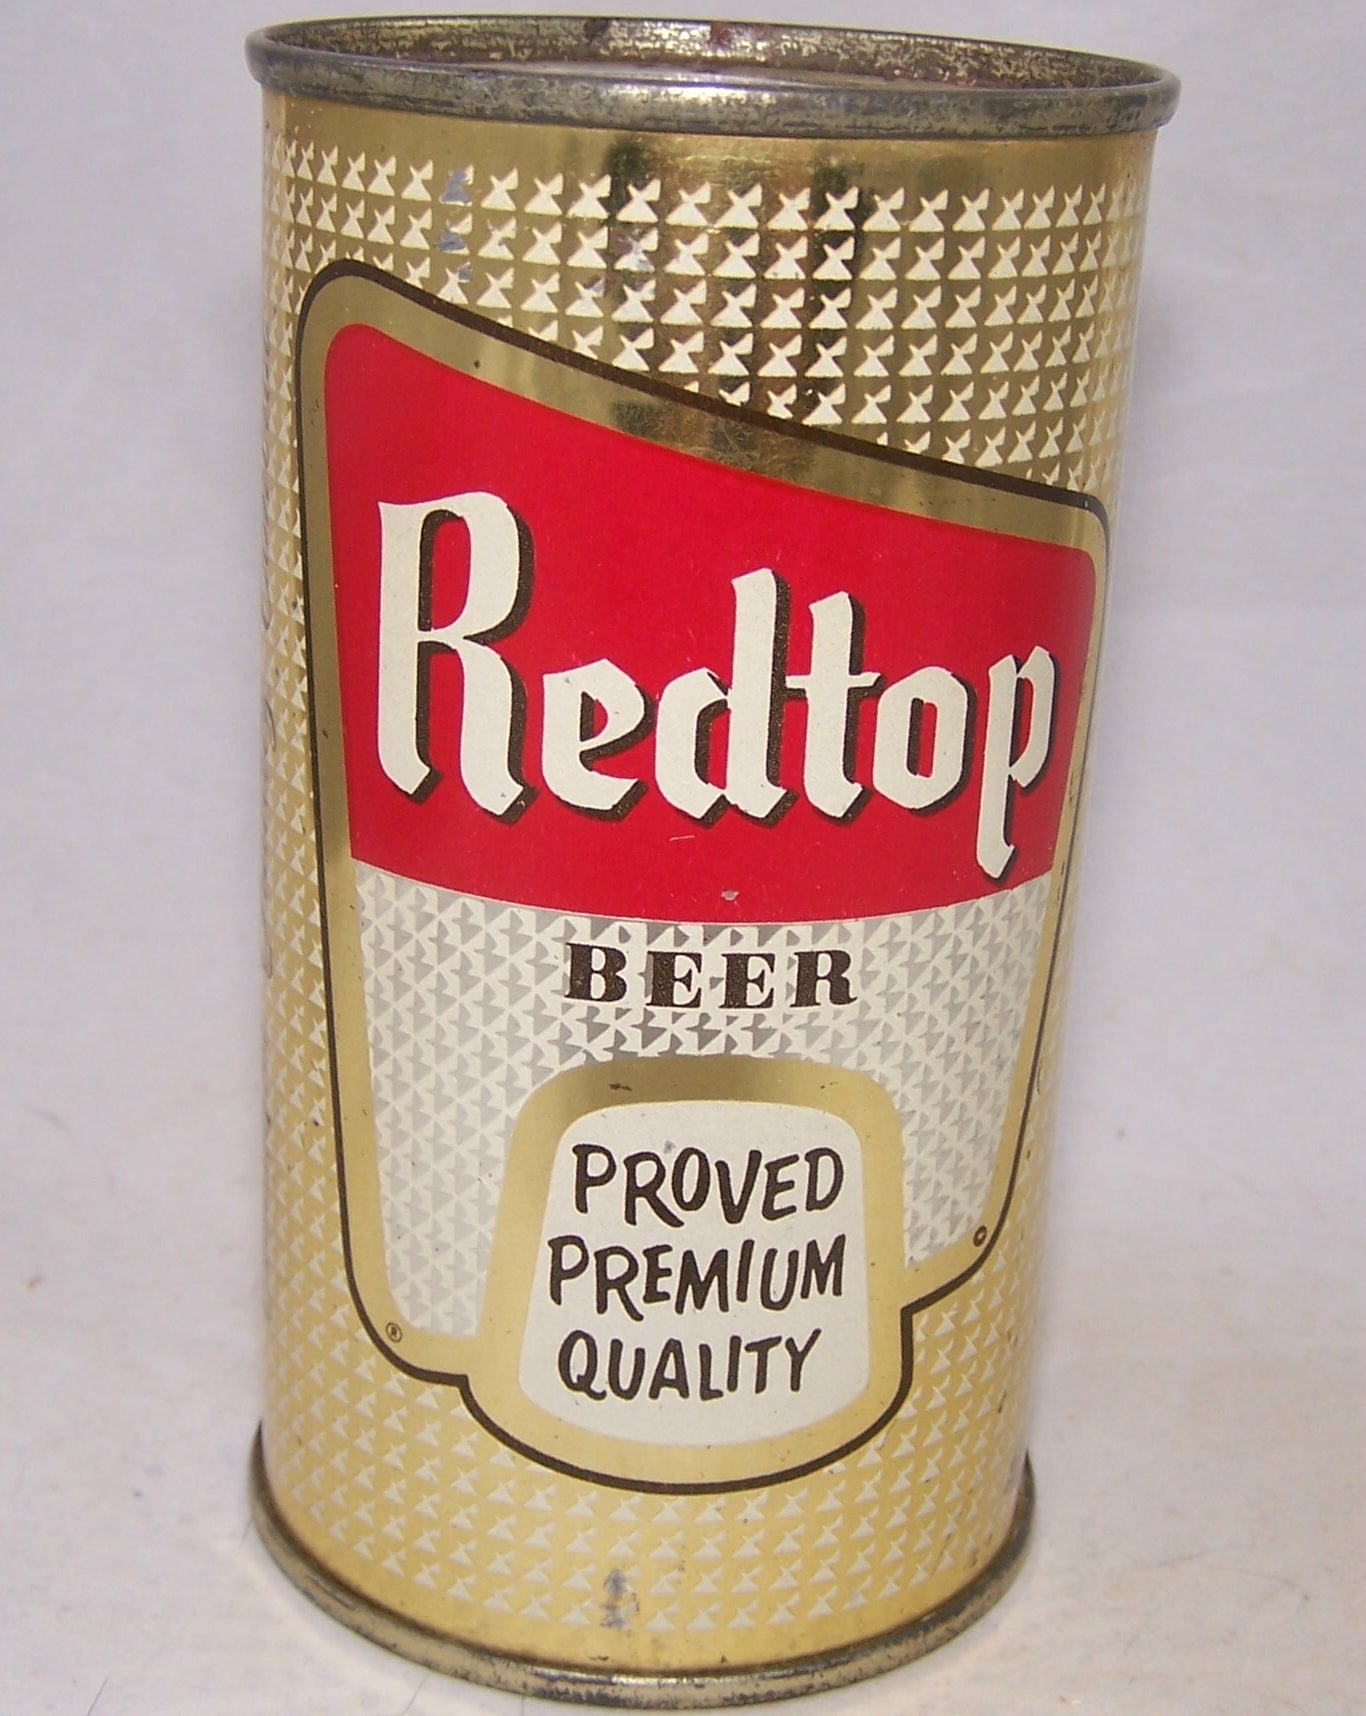 Redtop Beer (Proved Premium Quality) USBC 119-30, Grade 1/1+Sold 2/23/18